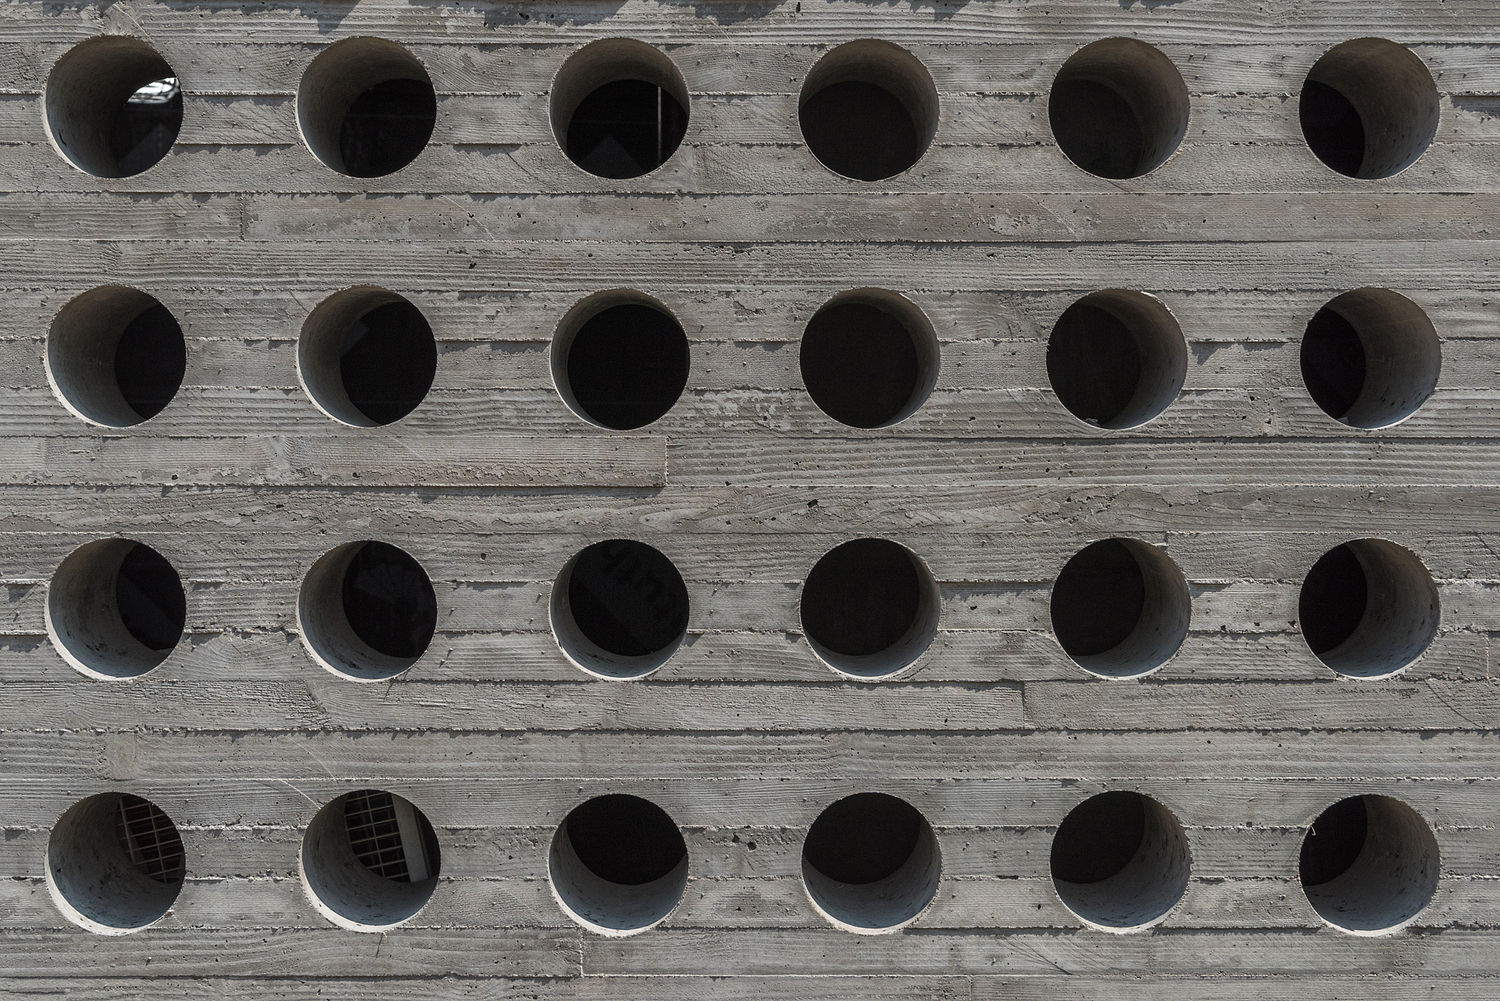 Concrete wall detail, John F. Kennedy Center for the Performing Arts, Washington DC